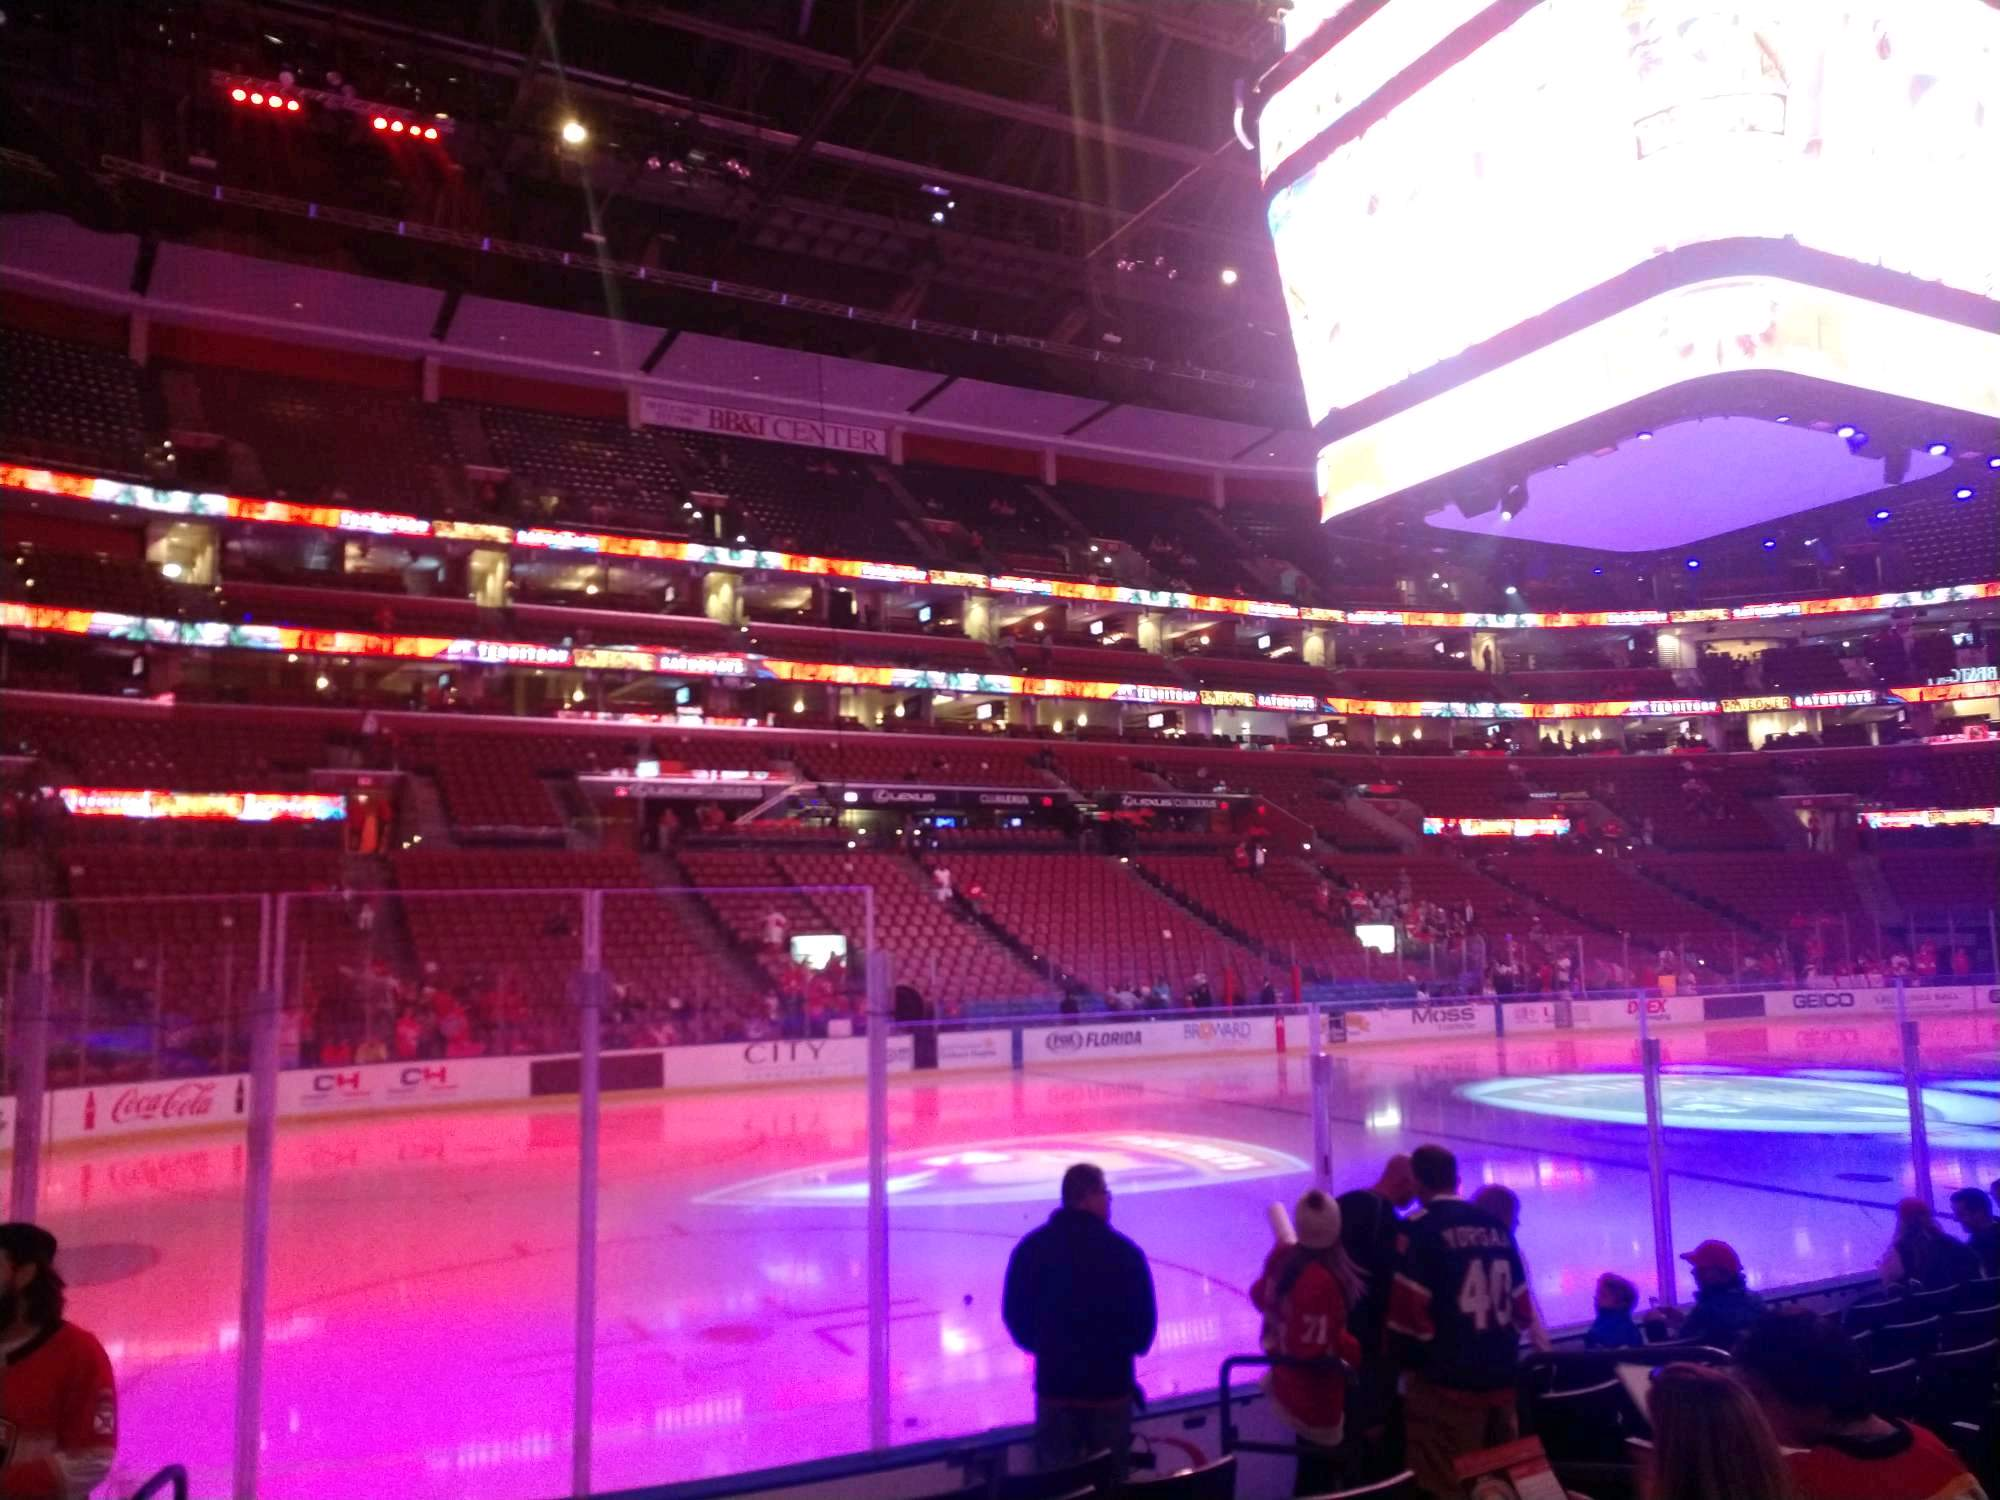 BB&T Center Section 121 Row 8 Seat 7